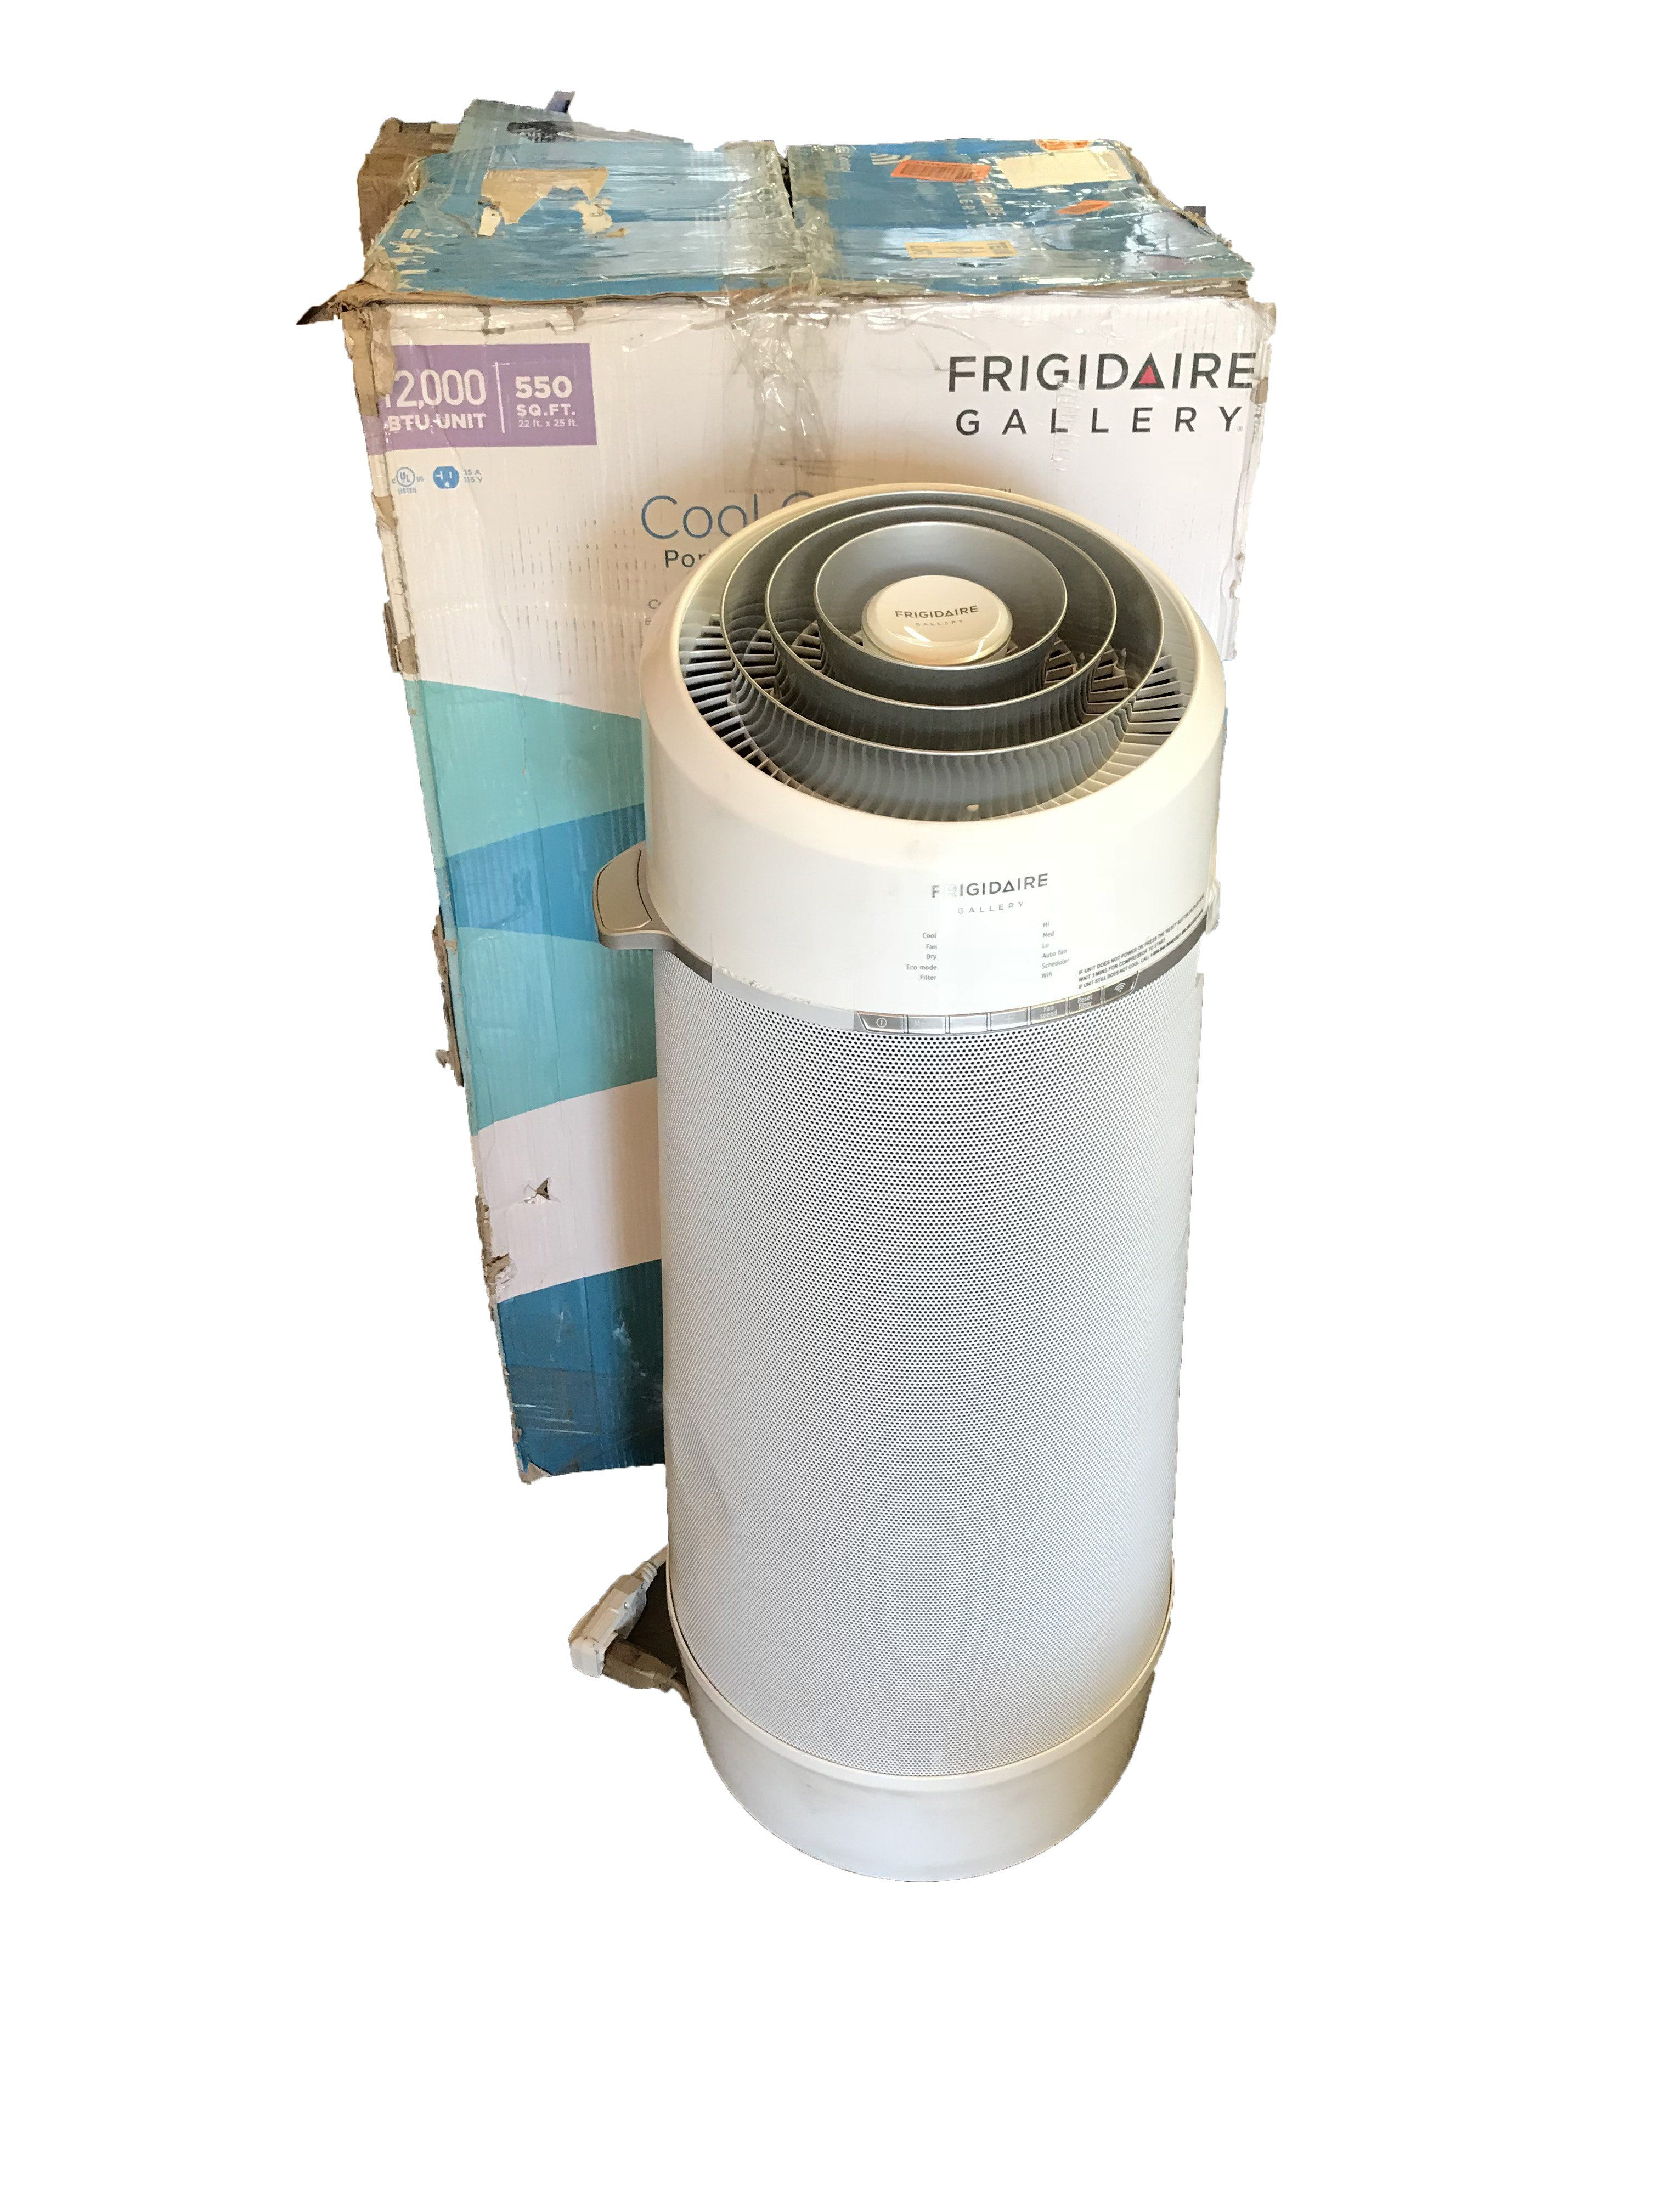 frigidaire cool connect portable air conditioner